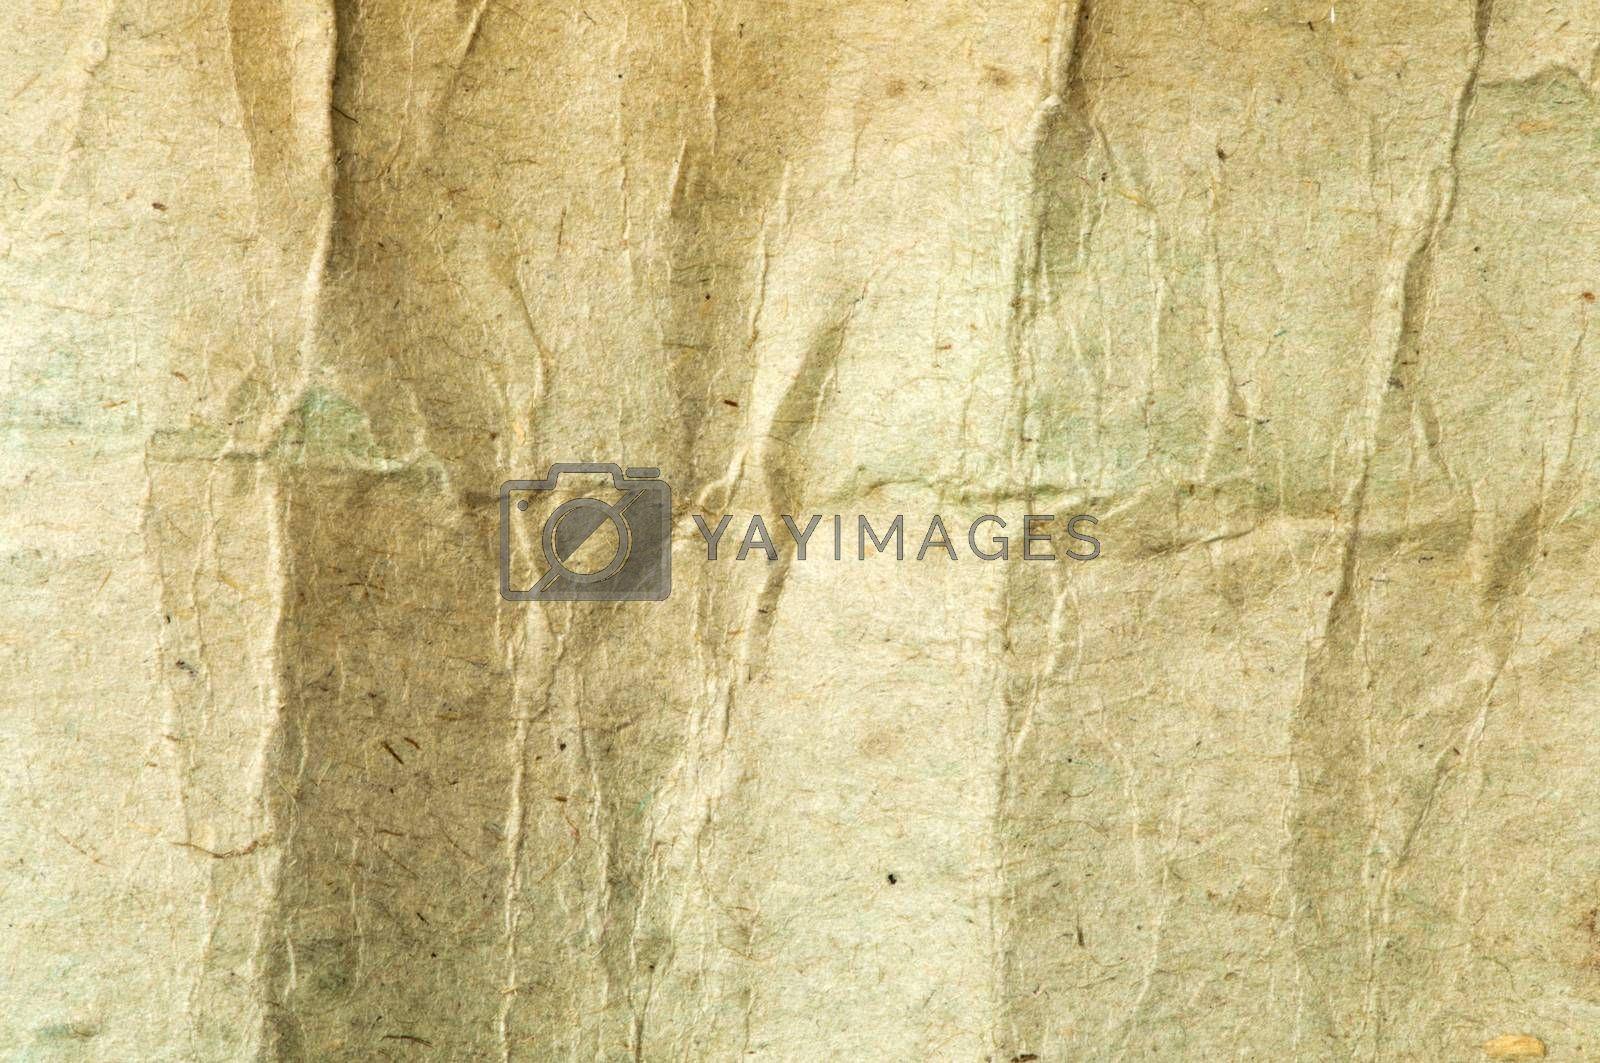 Old crumpled paper. Paper texture